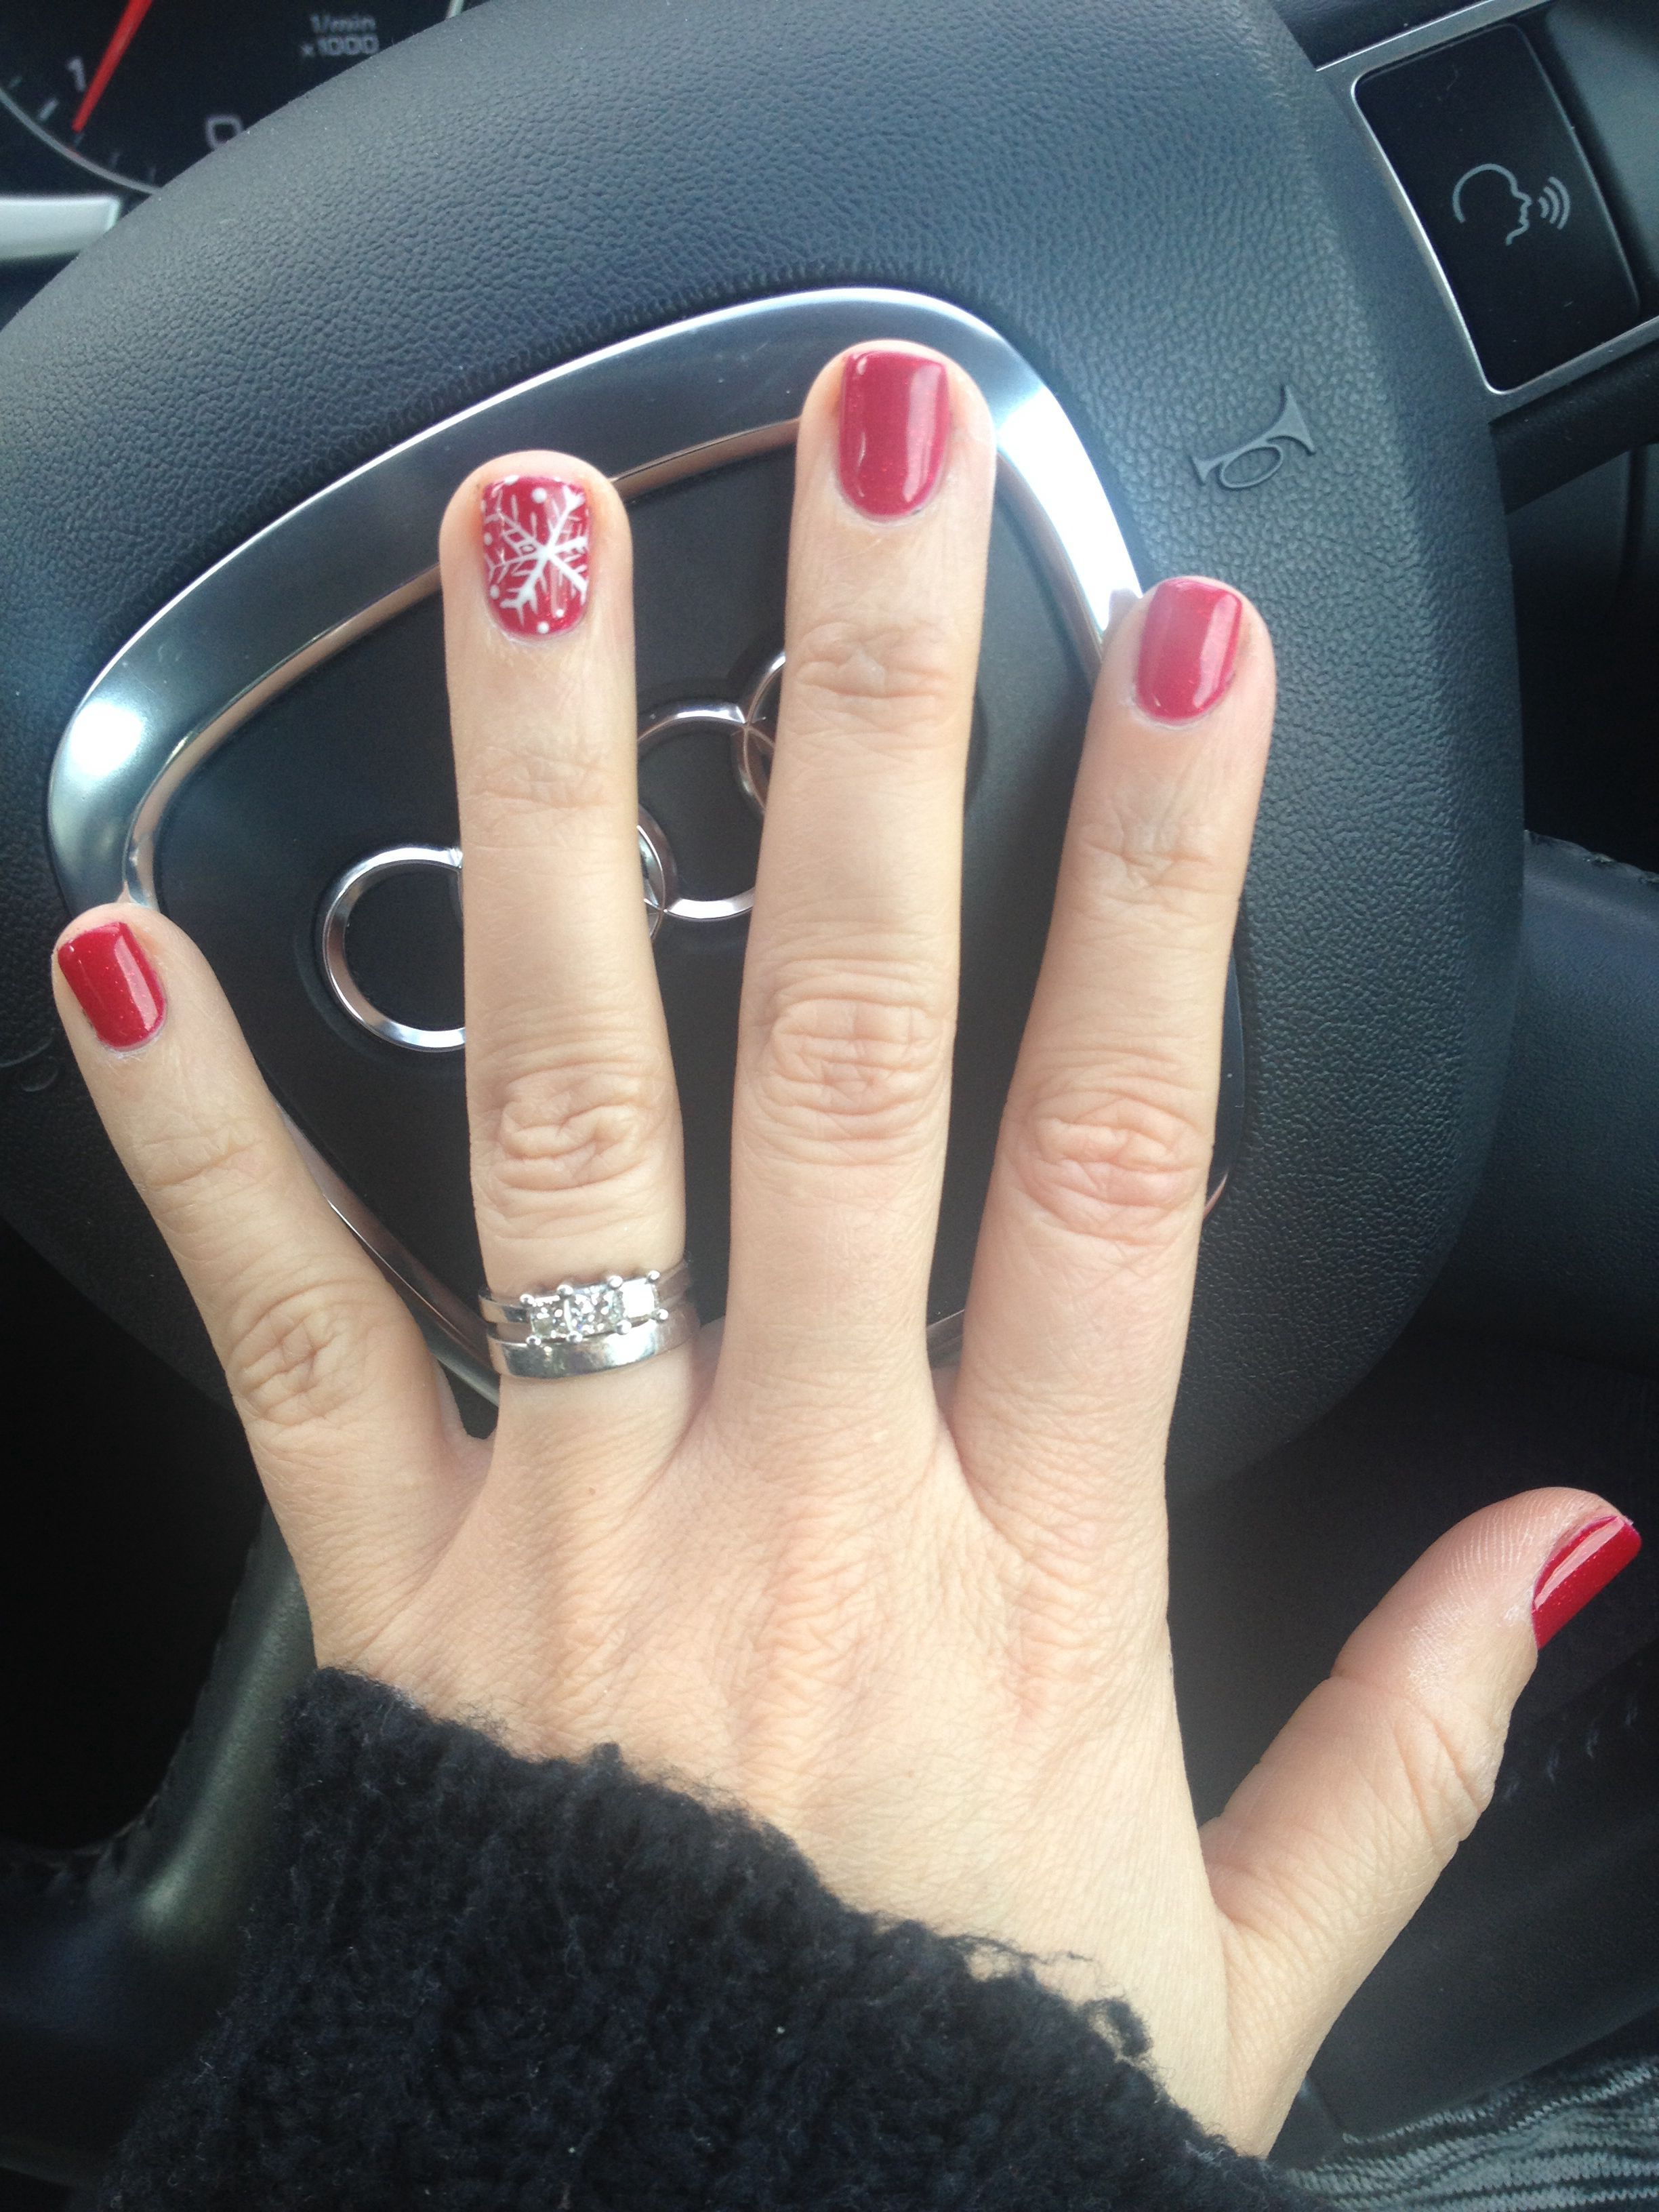 Red Xmas Shellac Nails Christmasnailsgel Red Shellac Nails Shellac Nail Designs Christmas Shellac Nails